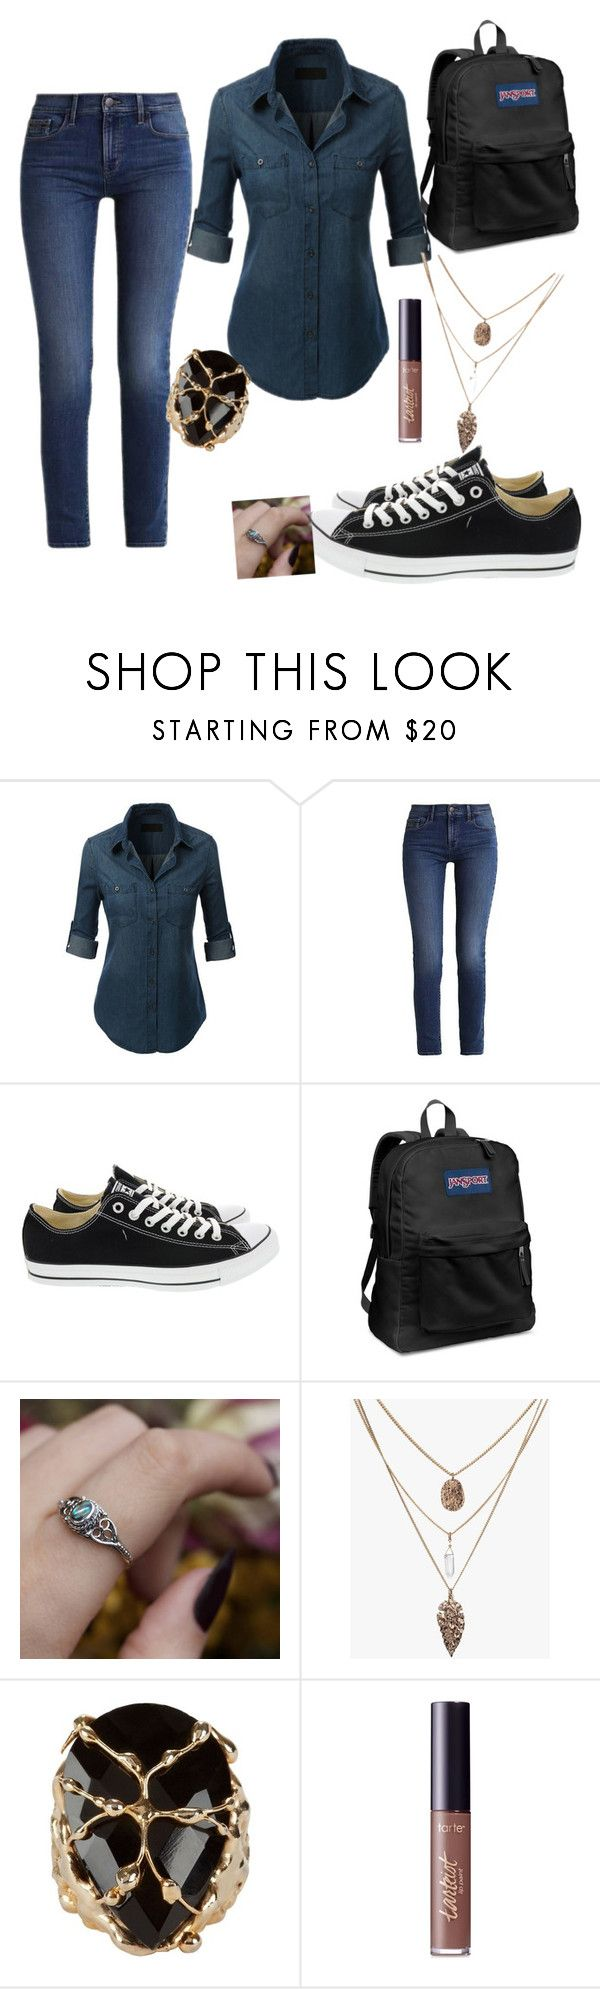 """""""School Outfit"""" by roze-m ❤ liked on Polyvore featuring Calvin Klein, Converse, JanSport, REGALROSE, Rosantica and tarte"""